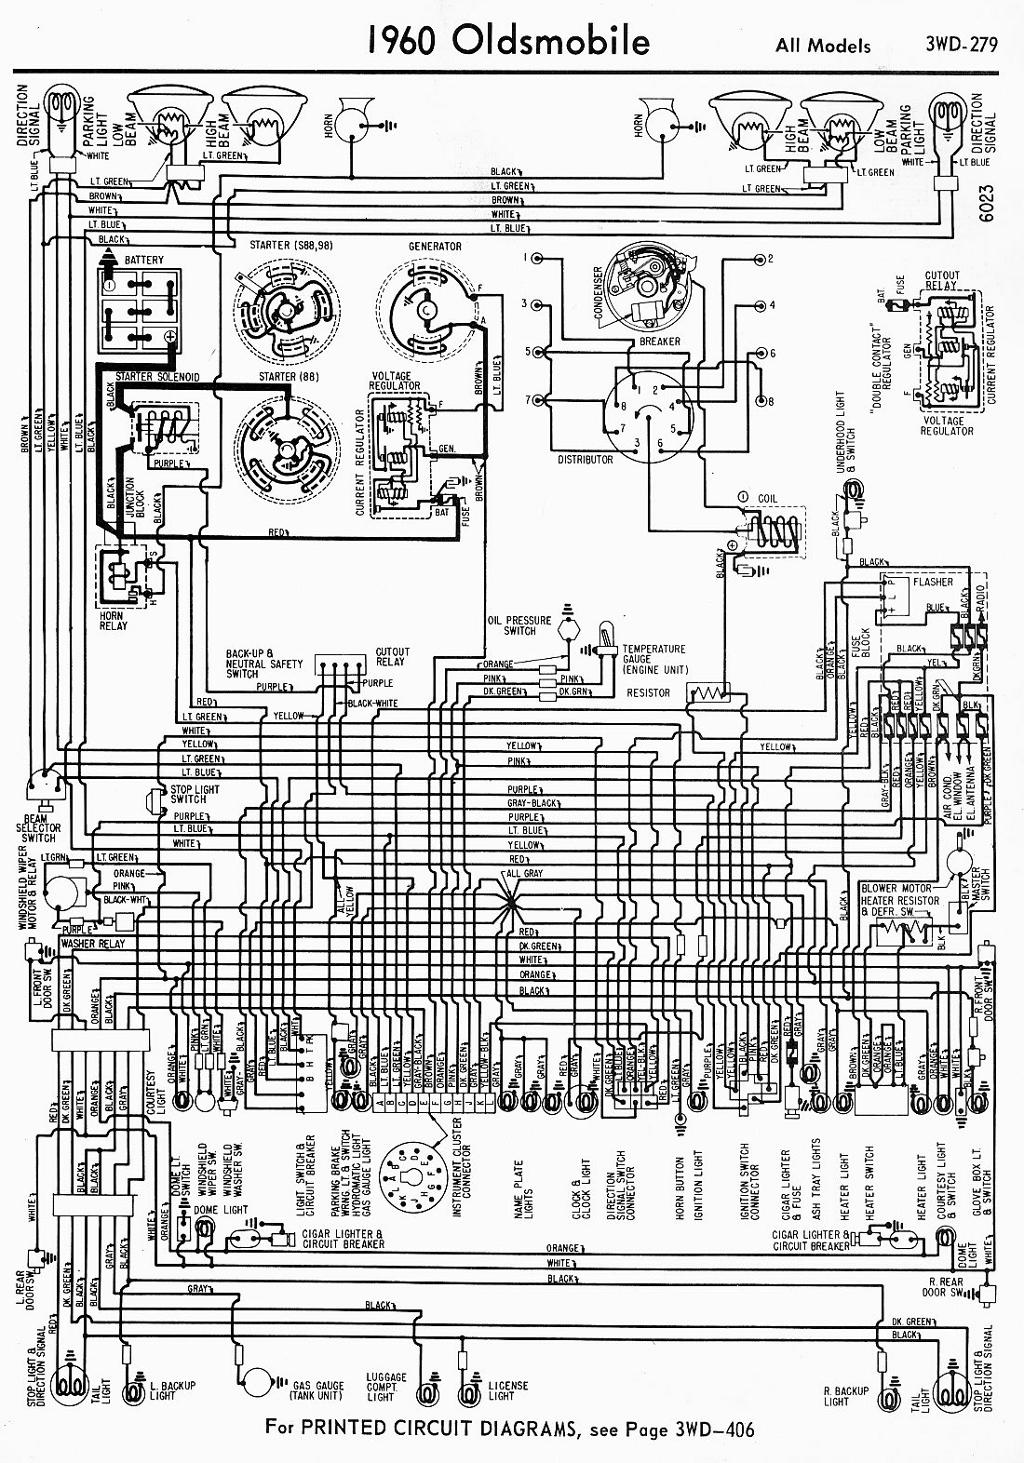 oldsmobile car manuals, wiring diagrams pdf & fault codes Boat Wiring Diagram 1940 oldsmobile wiring schematic Chevy Wiring Schematics International Wiring Schematics 1965 Ford Alternator Wiring Diagram